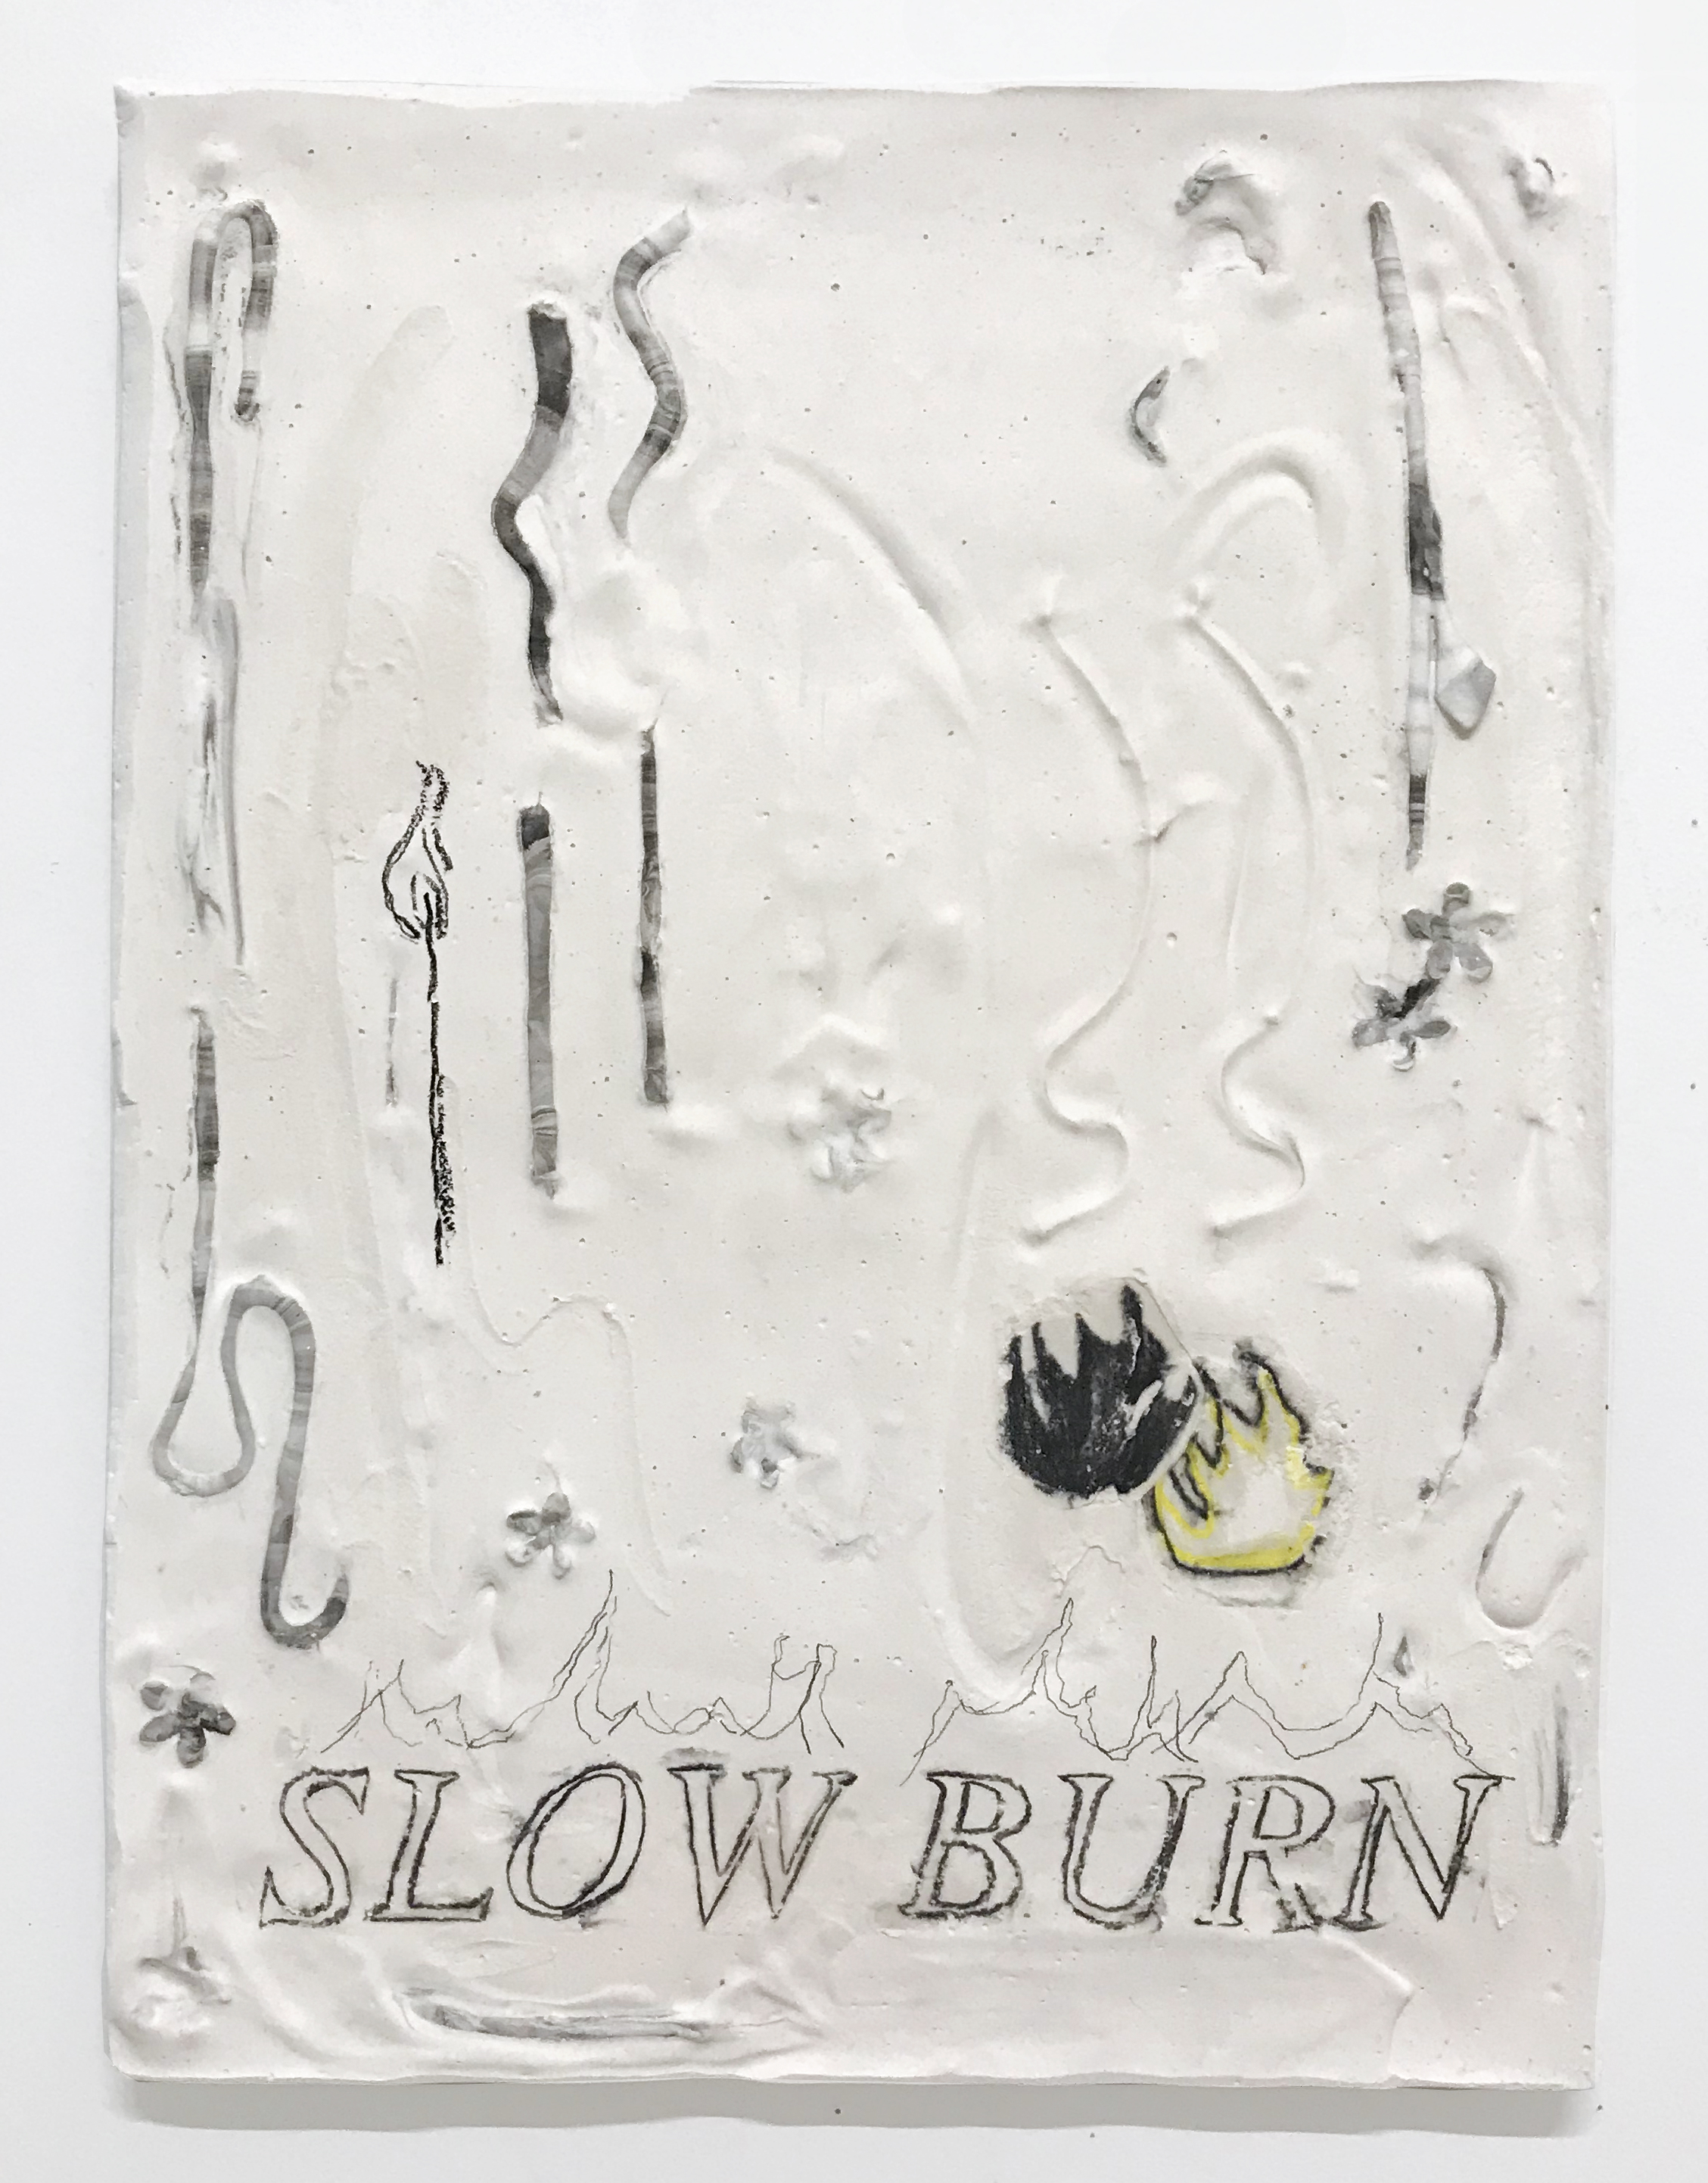 Slow burn, 2019  Crayon transfer, graphite, flowers, clay, hydrocal. 12x16""